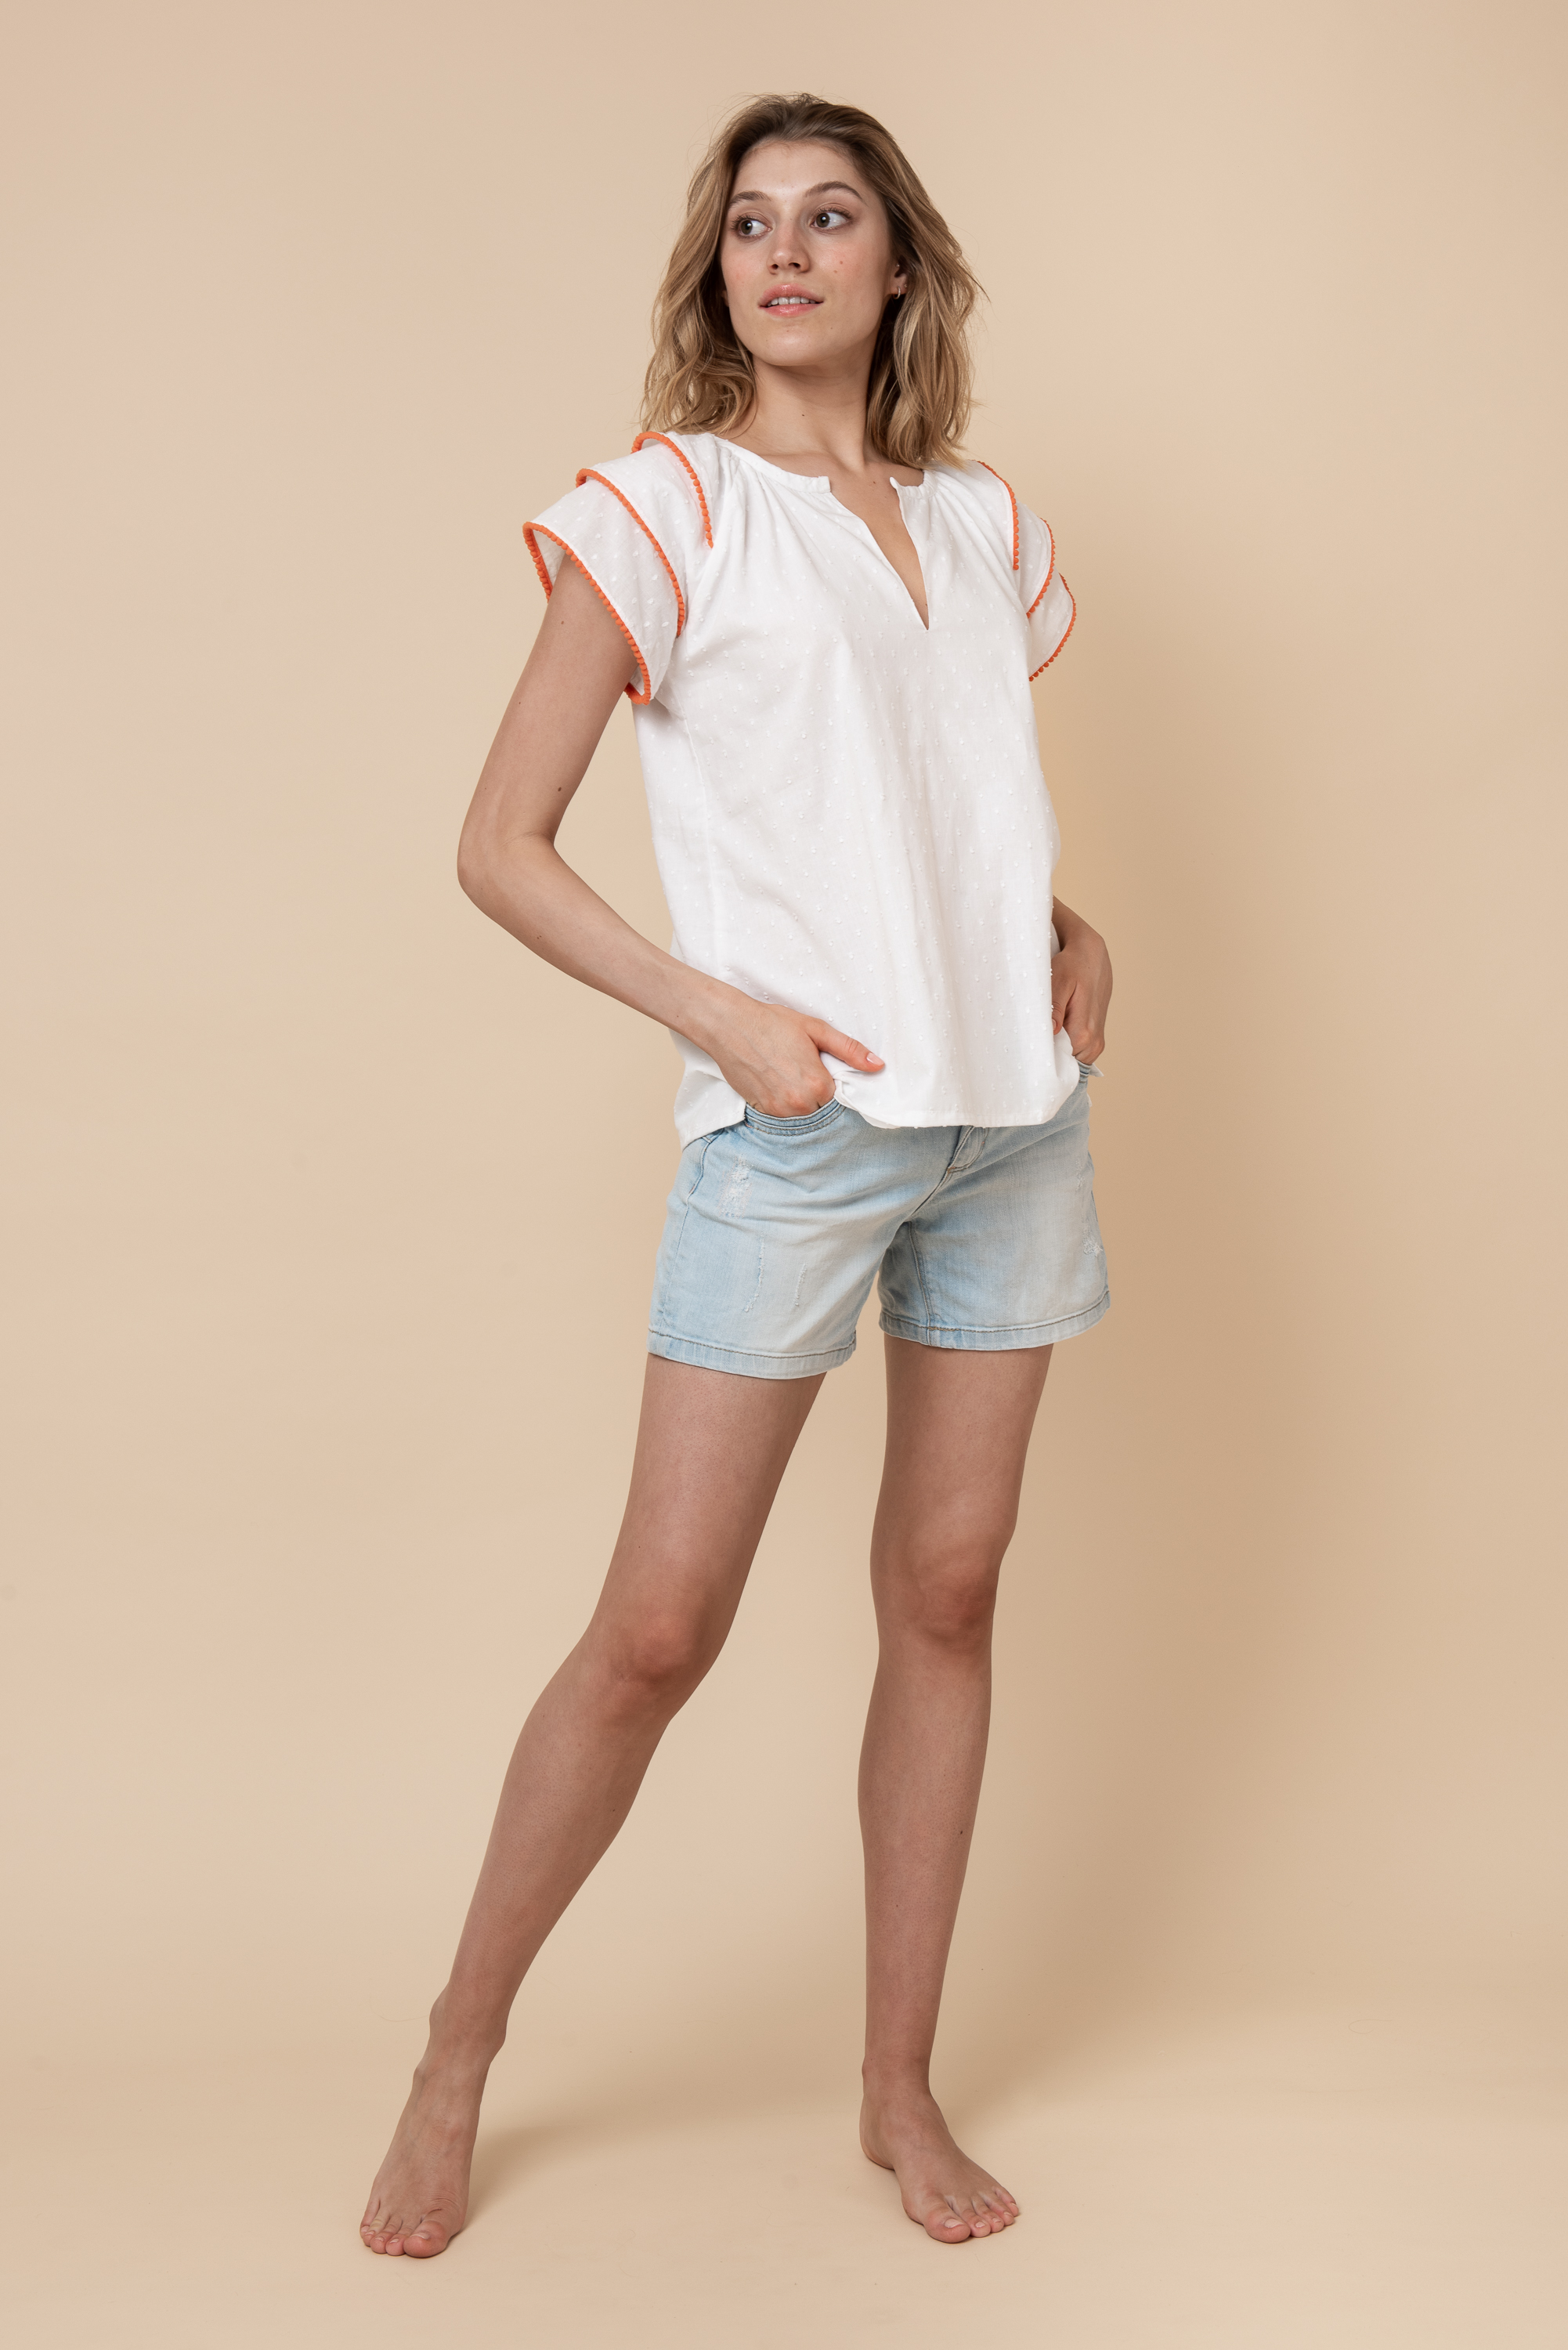 THE SCOUT The perfect summer top and promises to deliver so much more than a t-shirt.